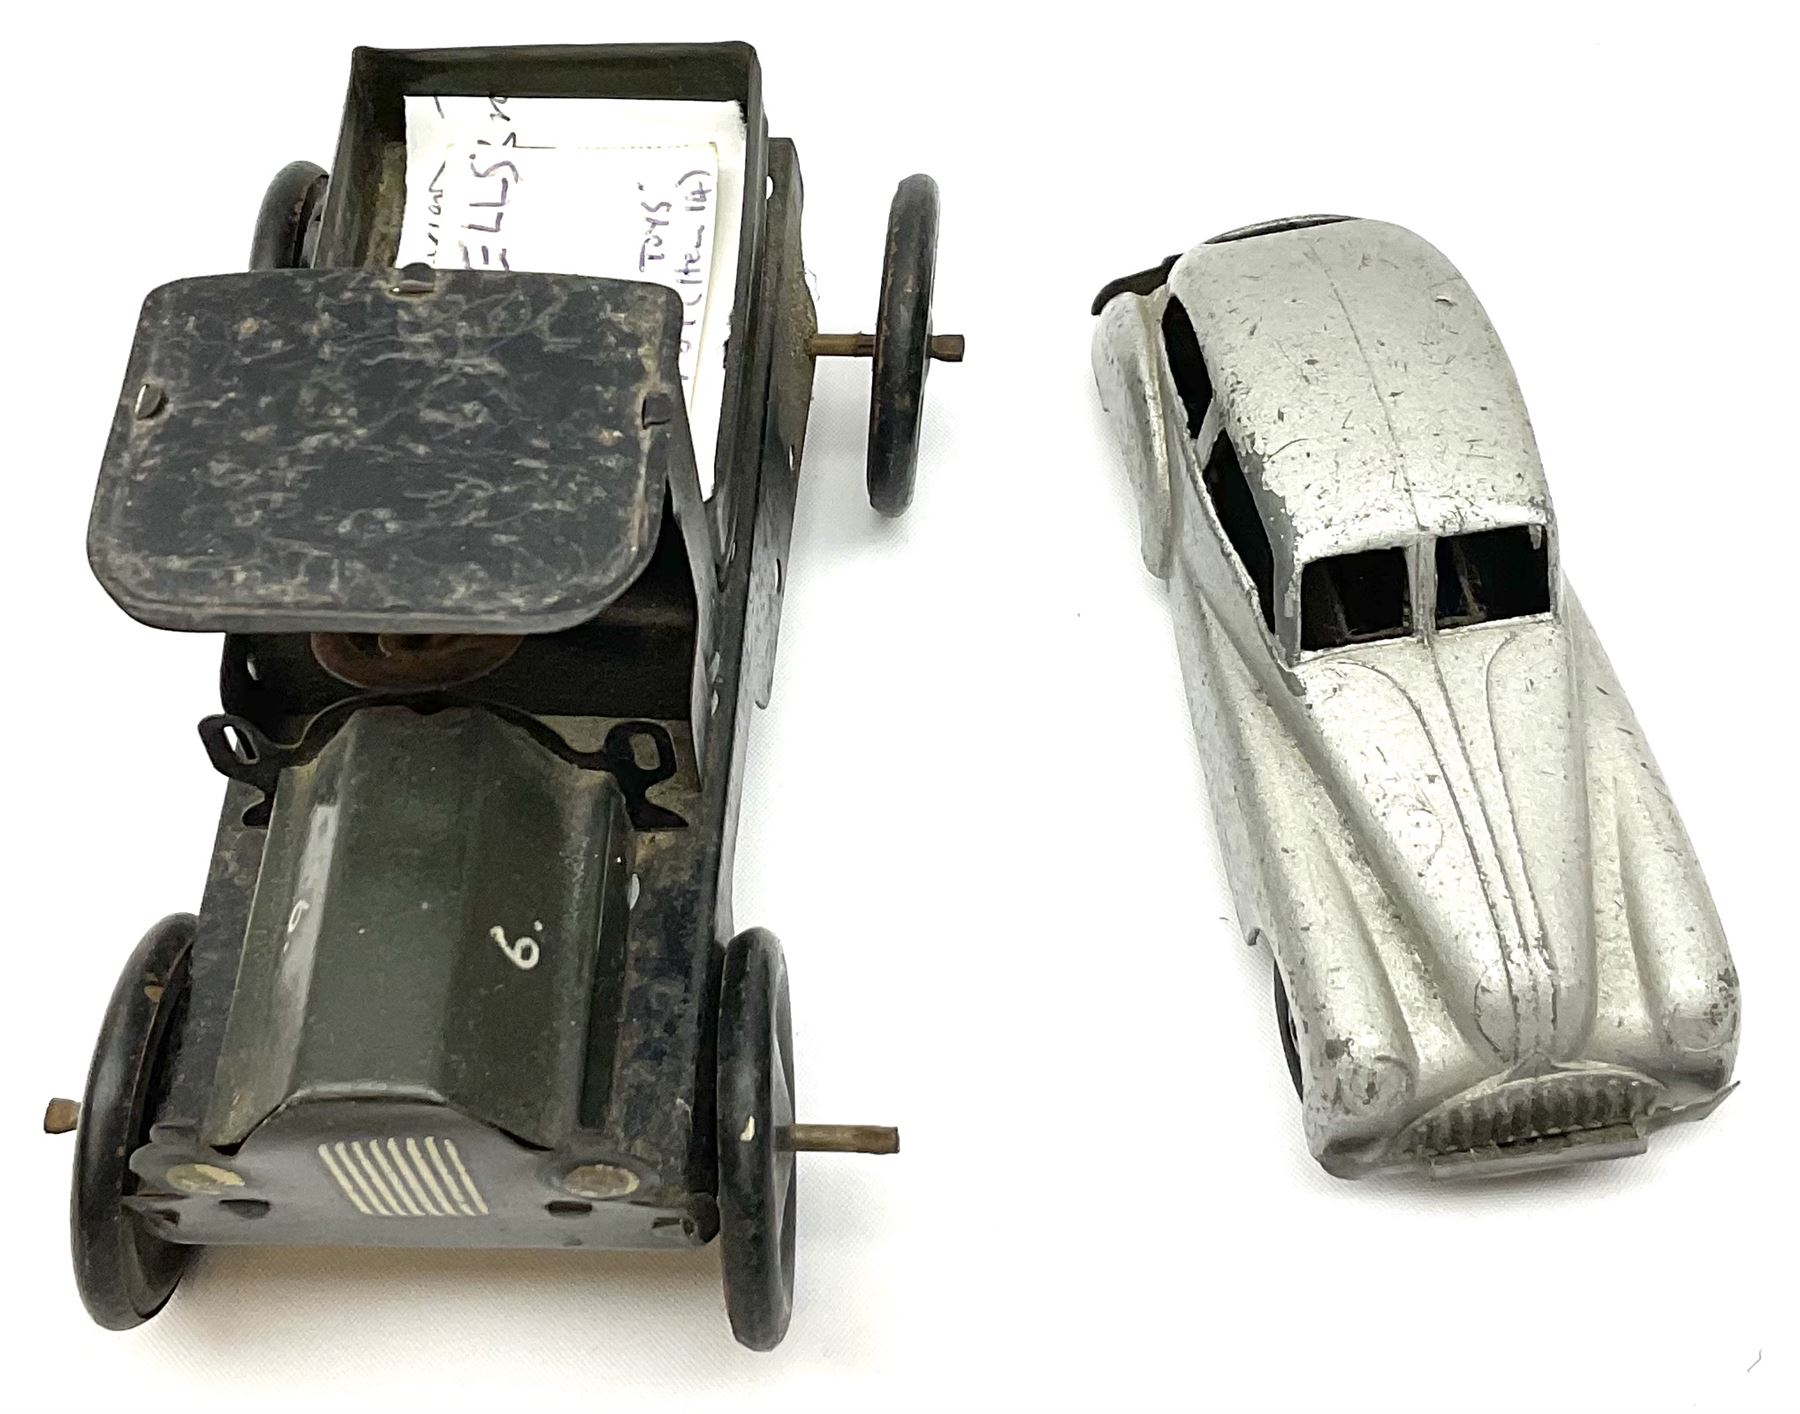 Wells Brimtoy/Pocketoy - eight tin-plate/clockwork or friction-drive vehicles comprising London Trol - Image 5 of 8